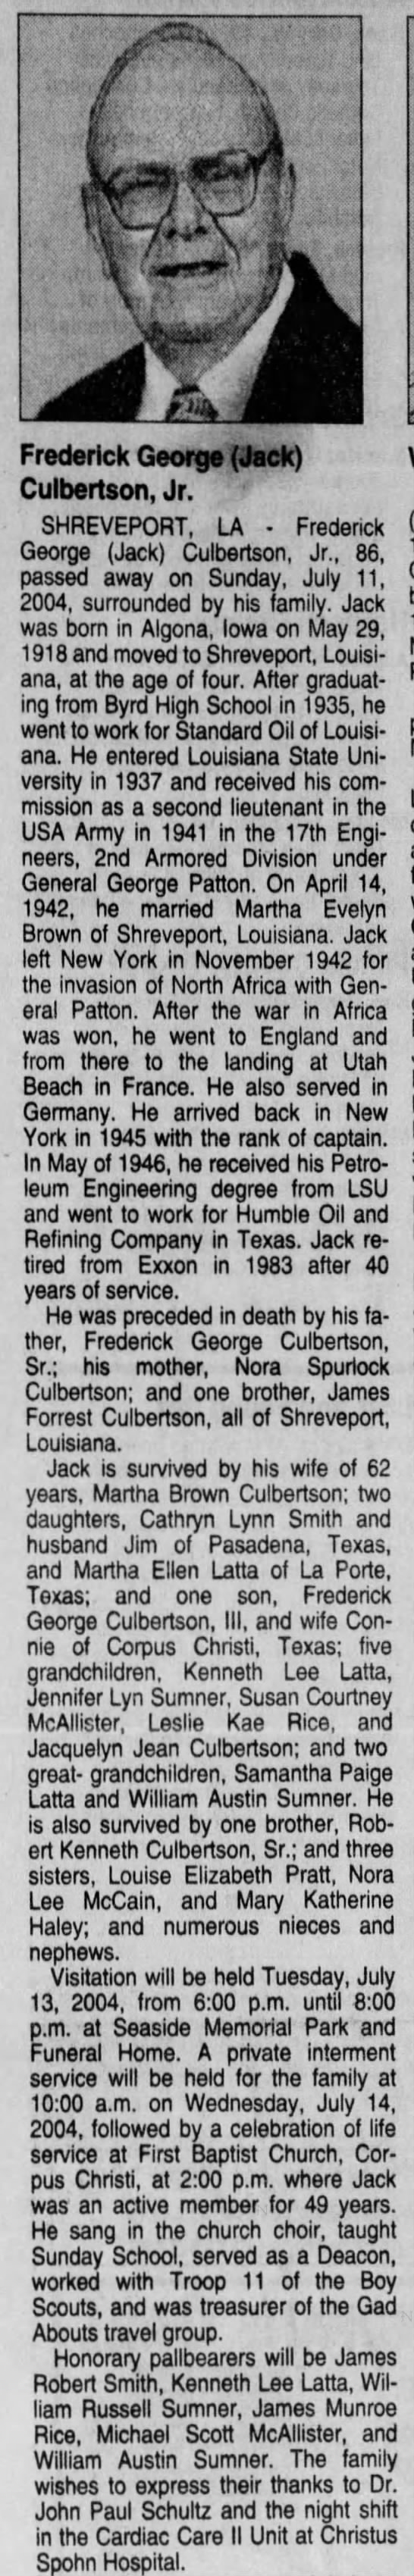 Frederick George Culberston - The Times (Shreveport, Caddo, Louisiana, United States of America) · 14 Jul 2004